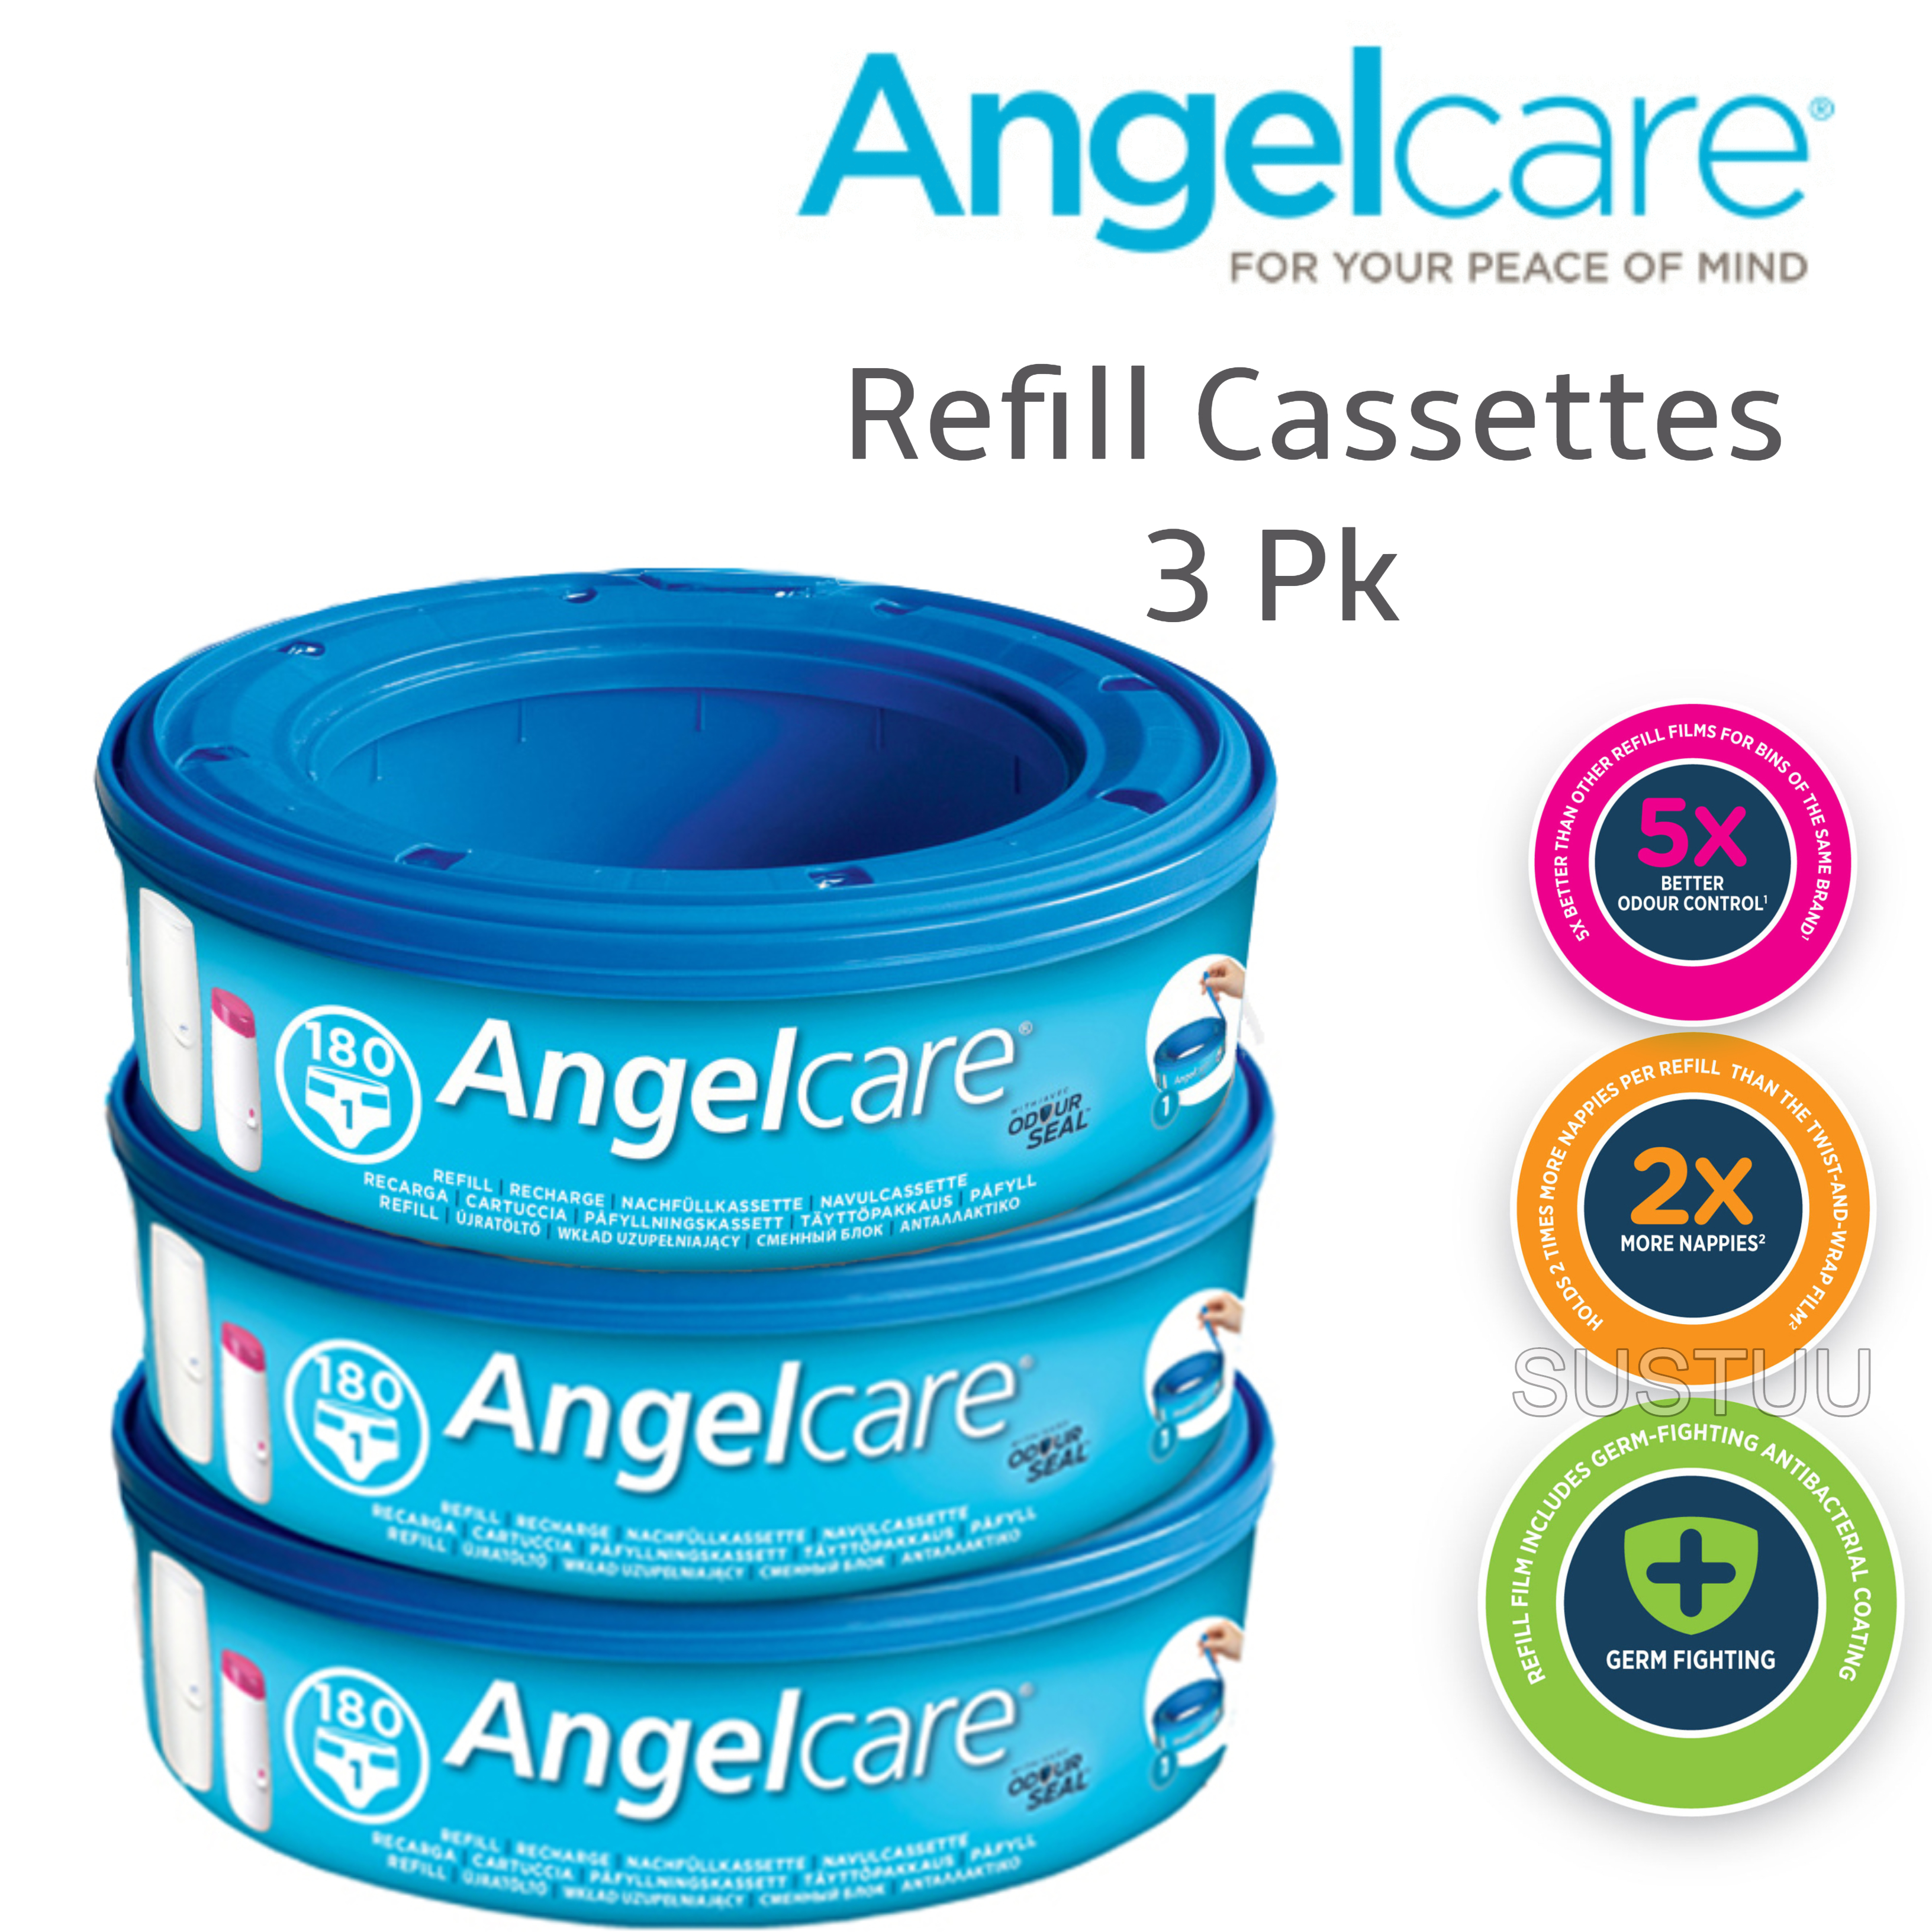 Angelcare Refill Cassettes|Baby/Kid's Nappies/Diapers Cleaning Refill|Pack Of 3